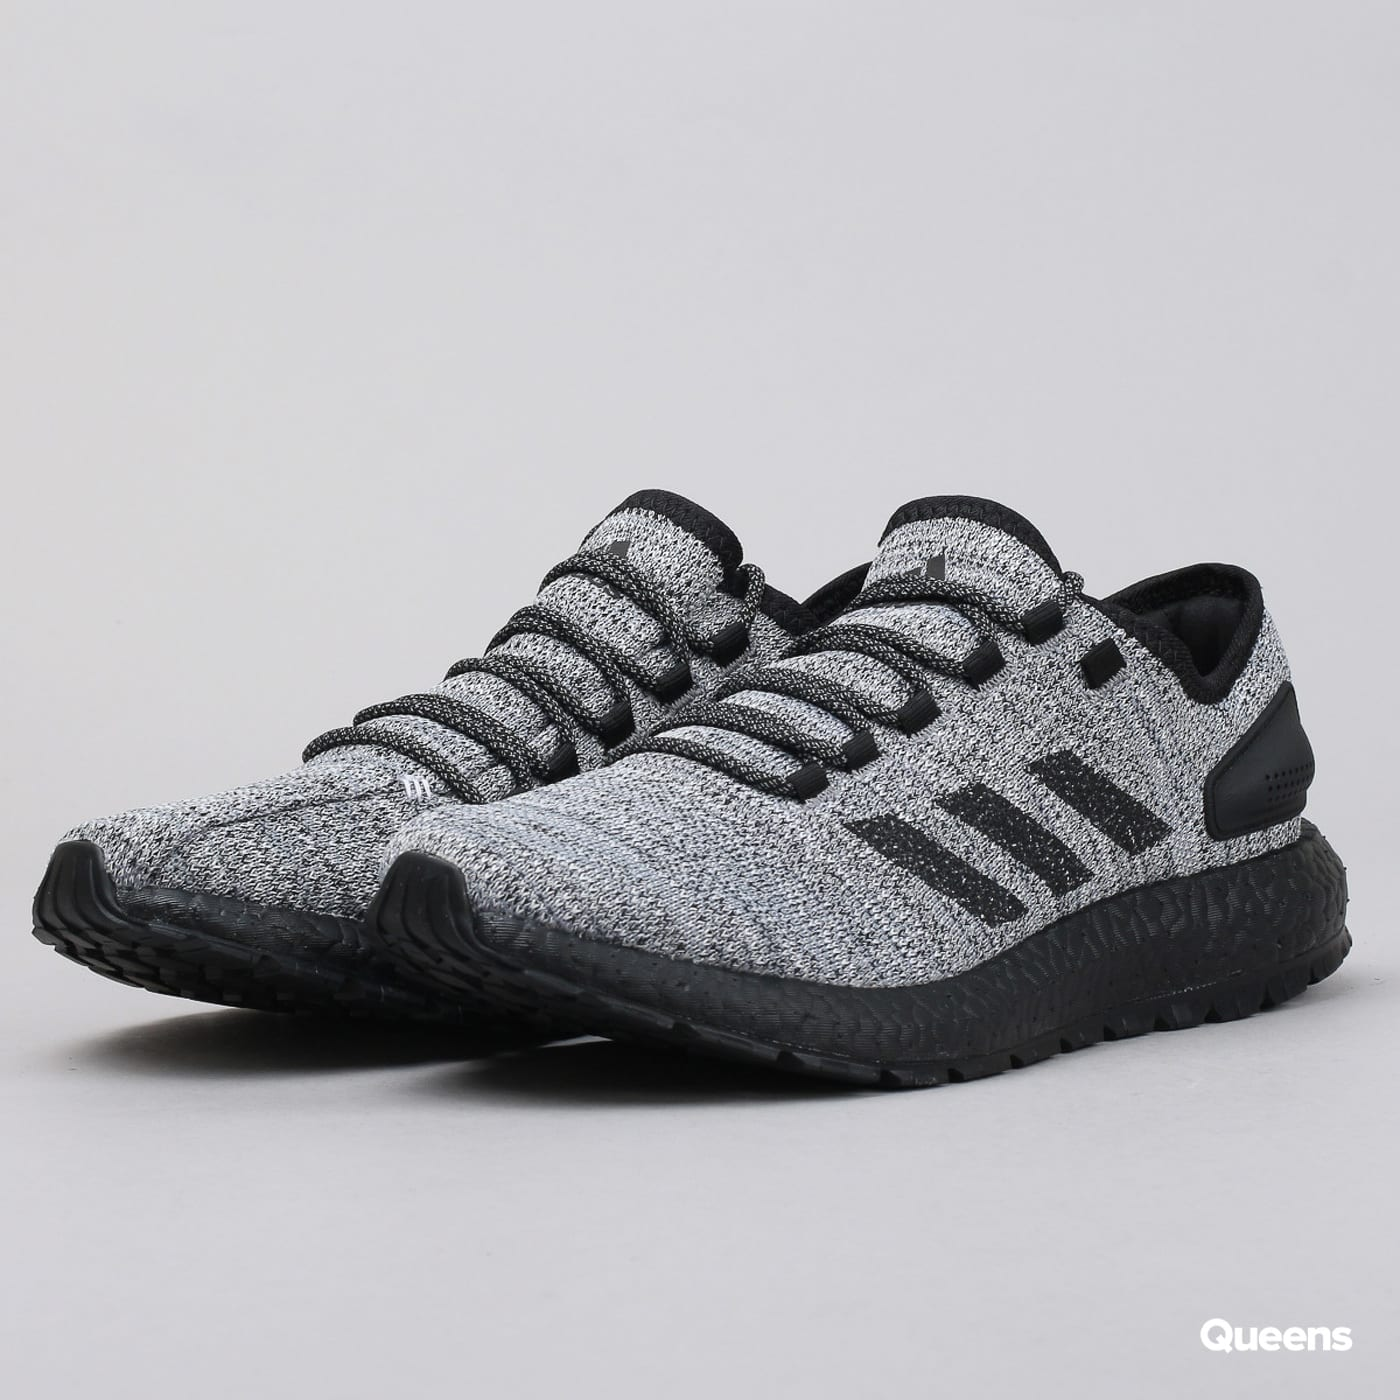 adidas Performance PureBoost All Terrain ftwwht / cblack / grey three